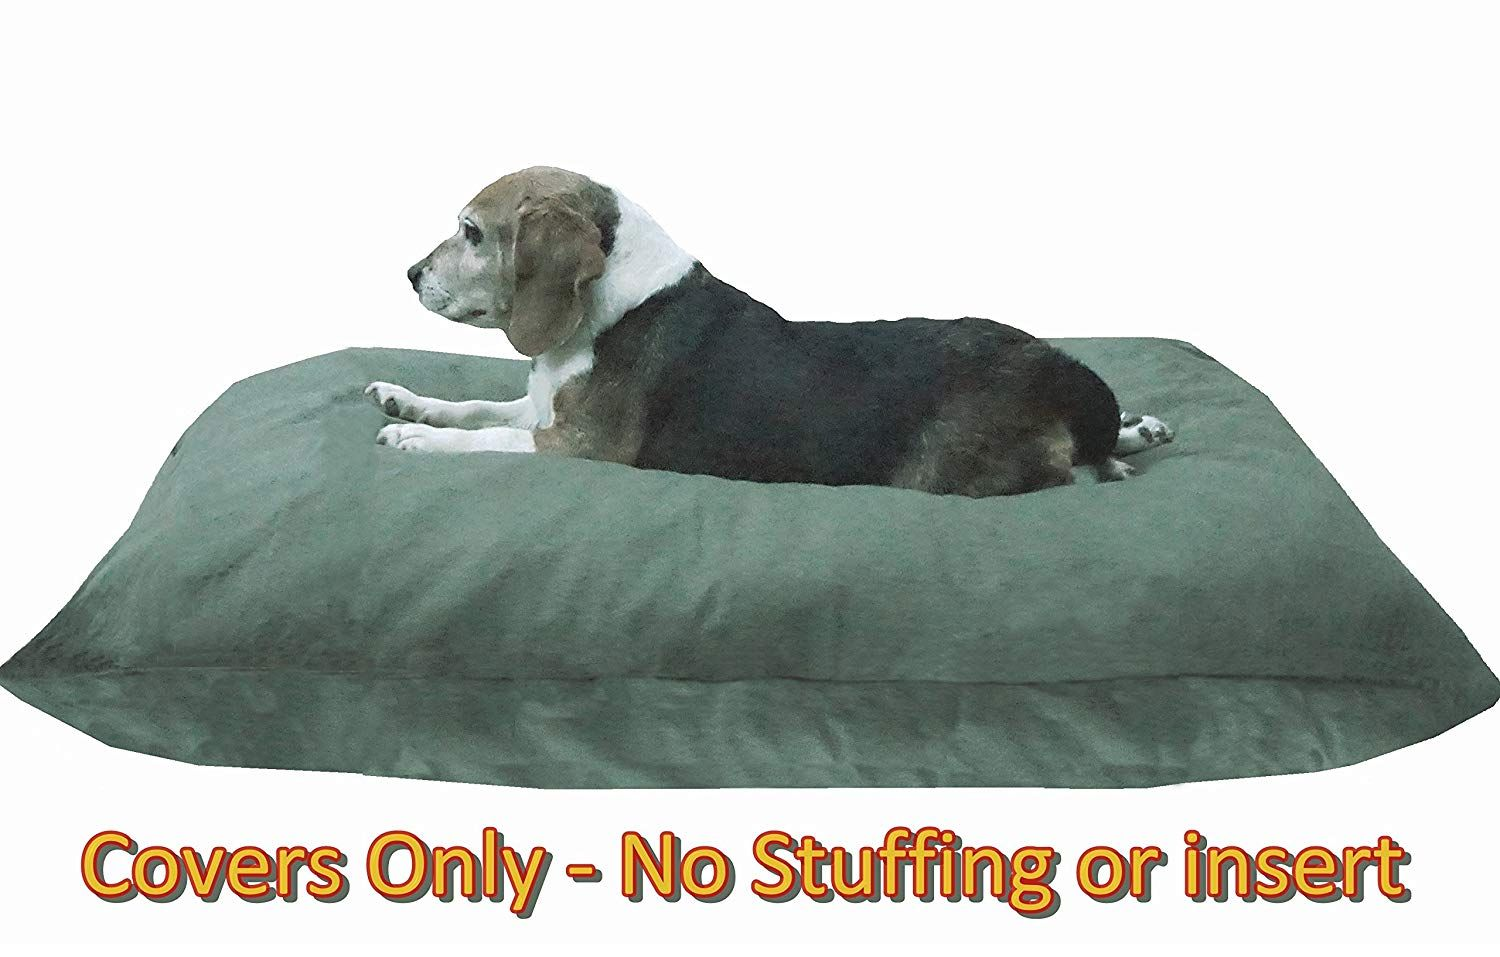 Waterproof Liner Internal Case in Medium or Large for Dog and Cat Covers only Pet Bed Duvet Zipper External Cover Dogbed4less DIY Do It Yourself Pet Pillow 2 Covers